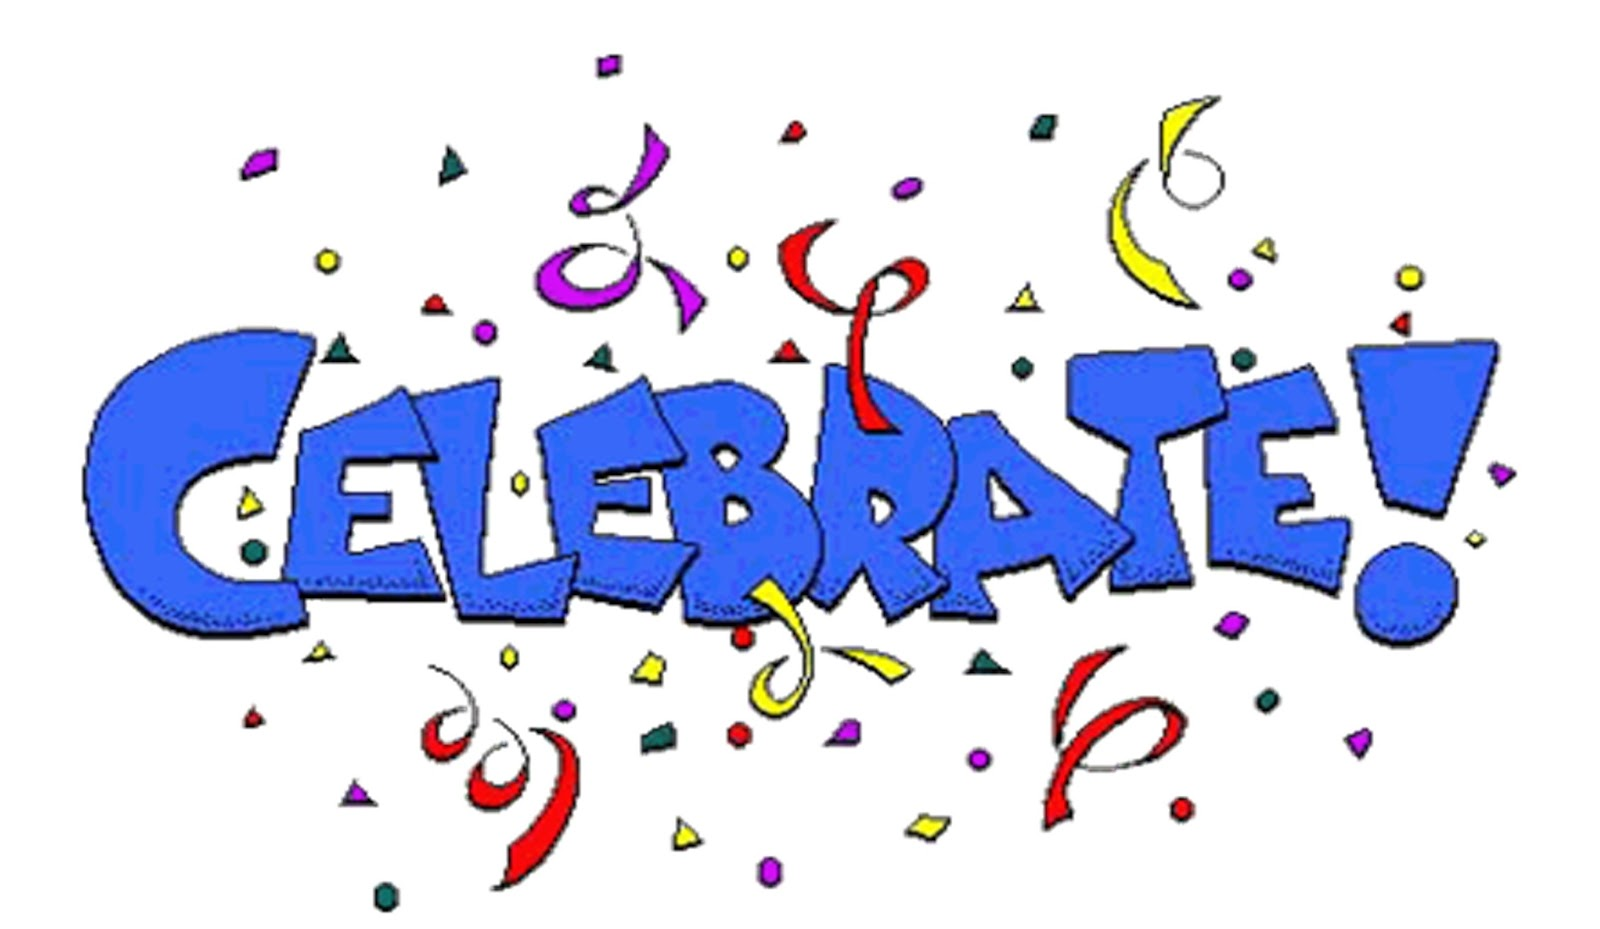 Party clipart celebration Celebration Free com celebration clipart